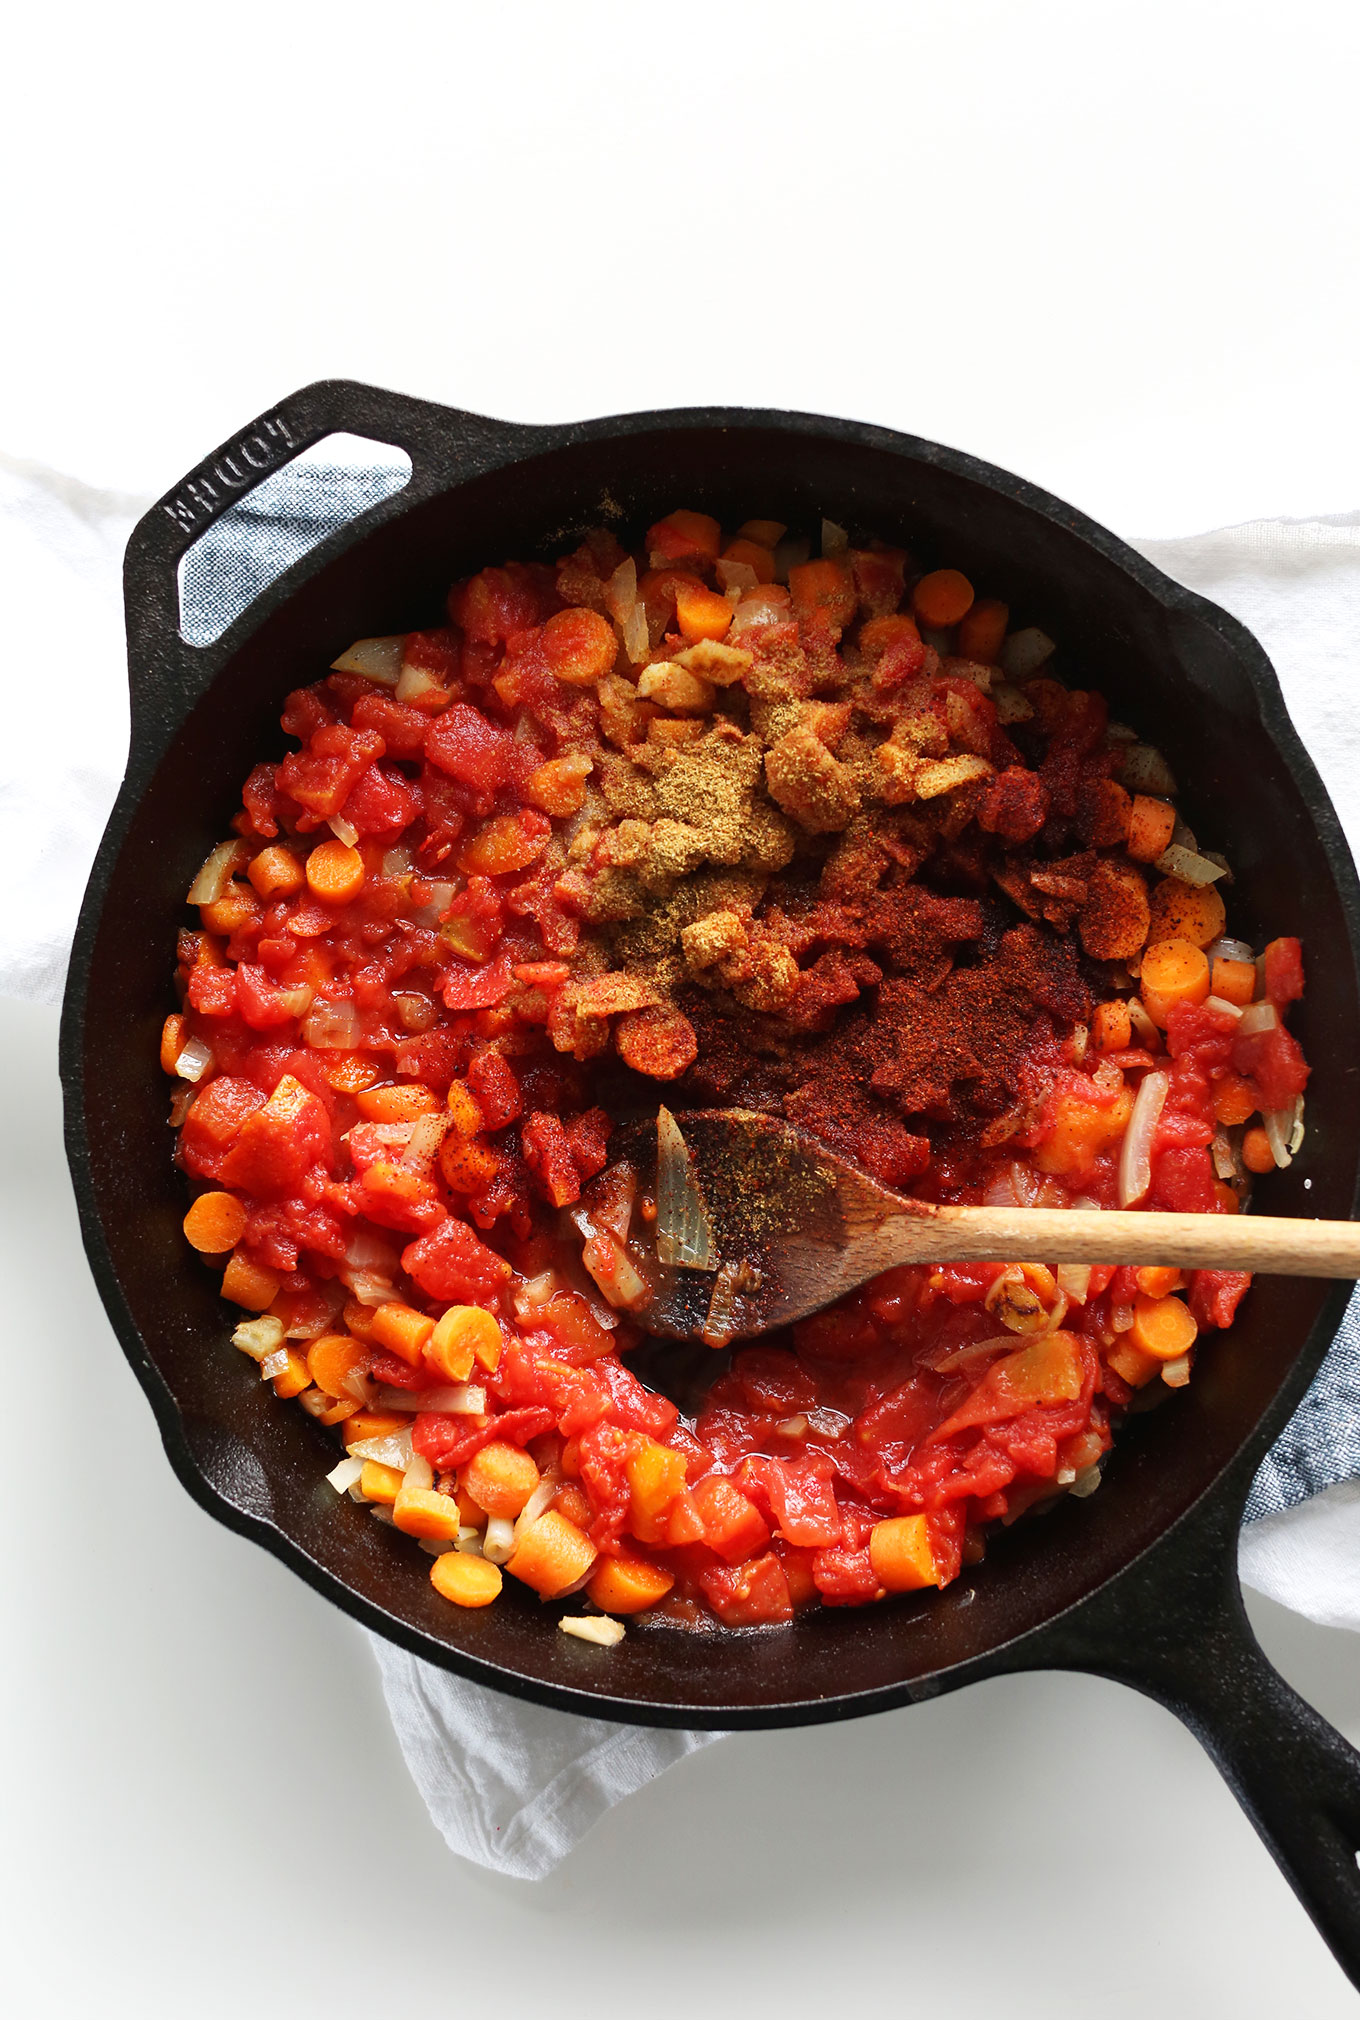 Cast iron skillet with ingredients for making homemade Chipotle Blended Red Salsa